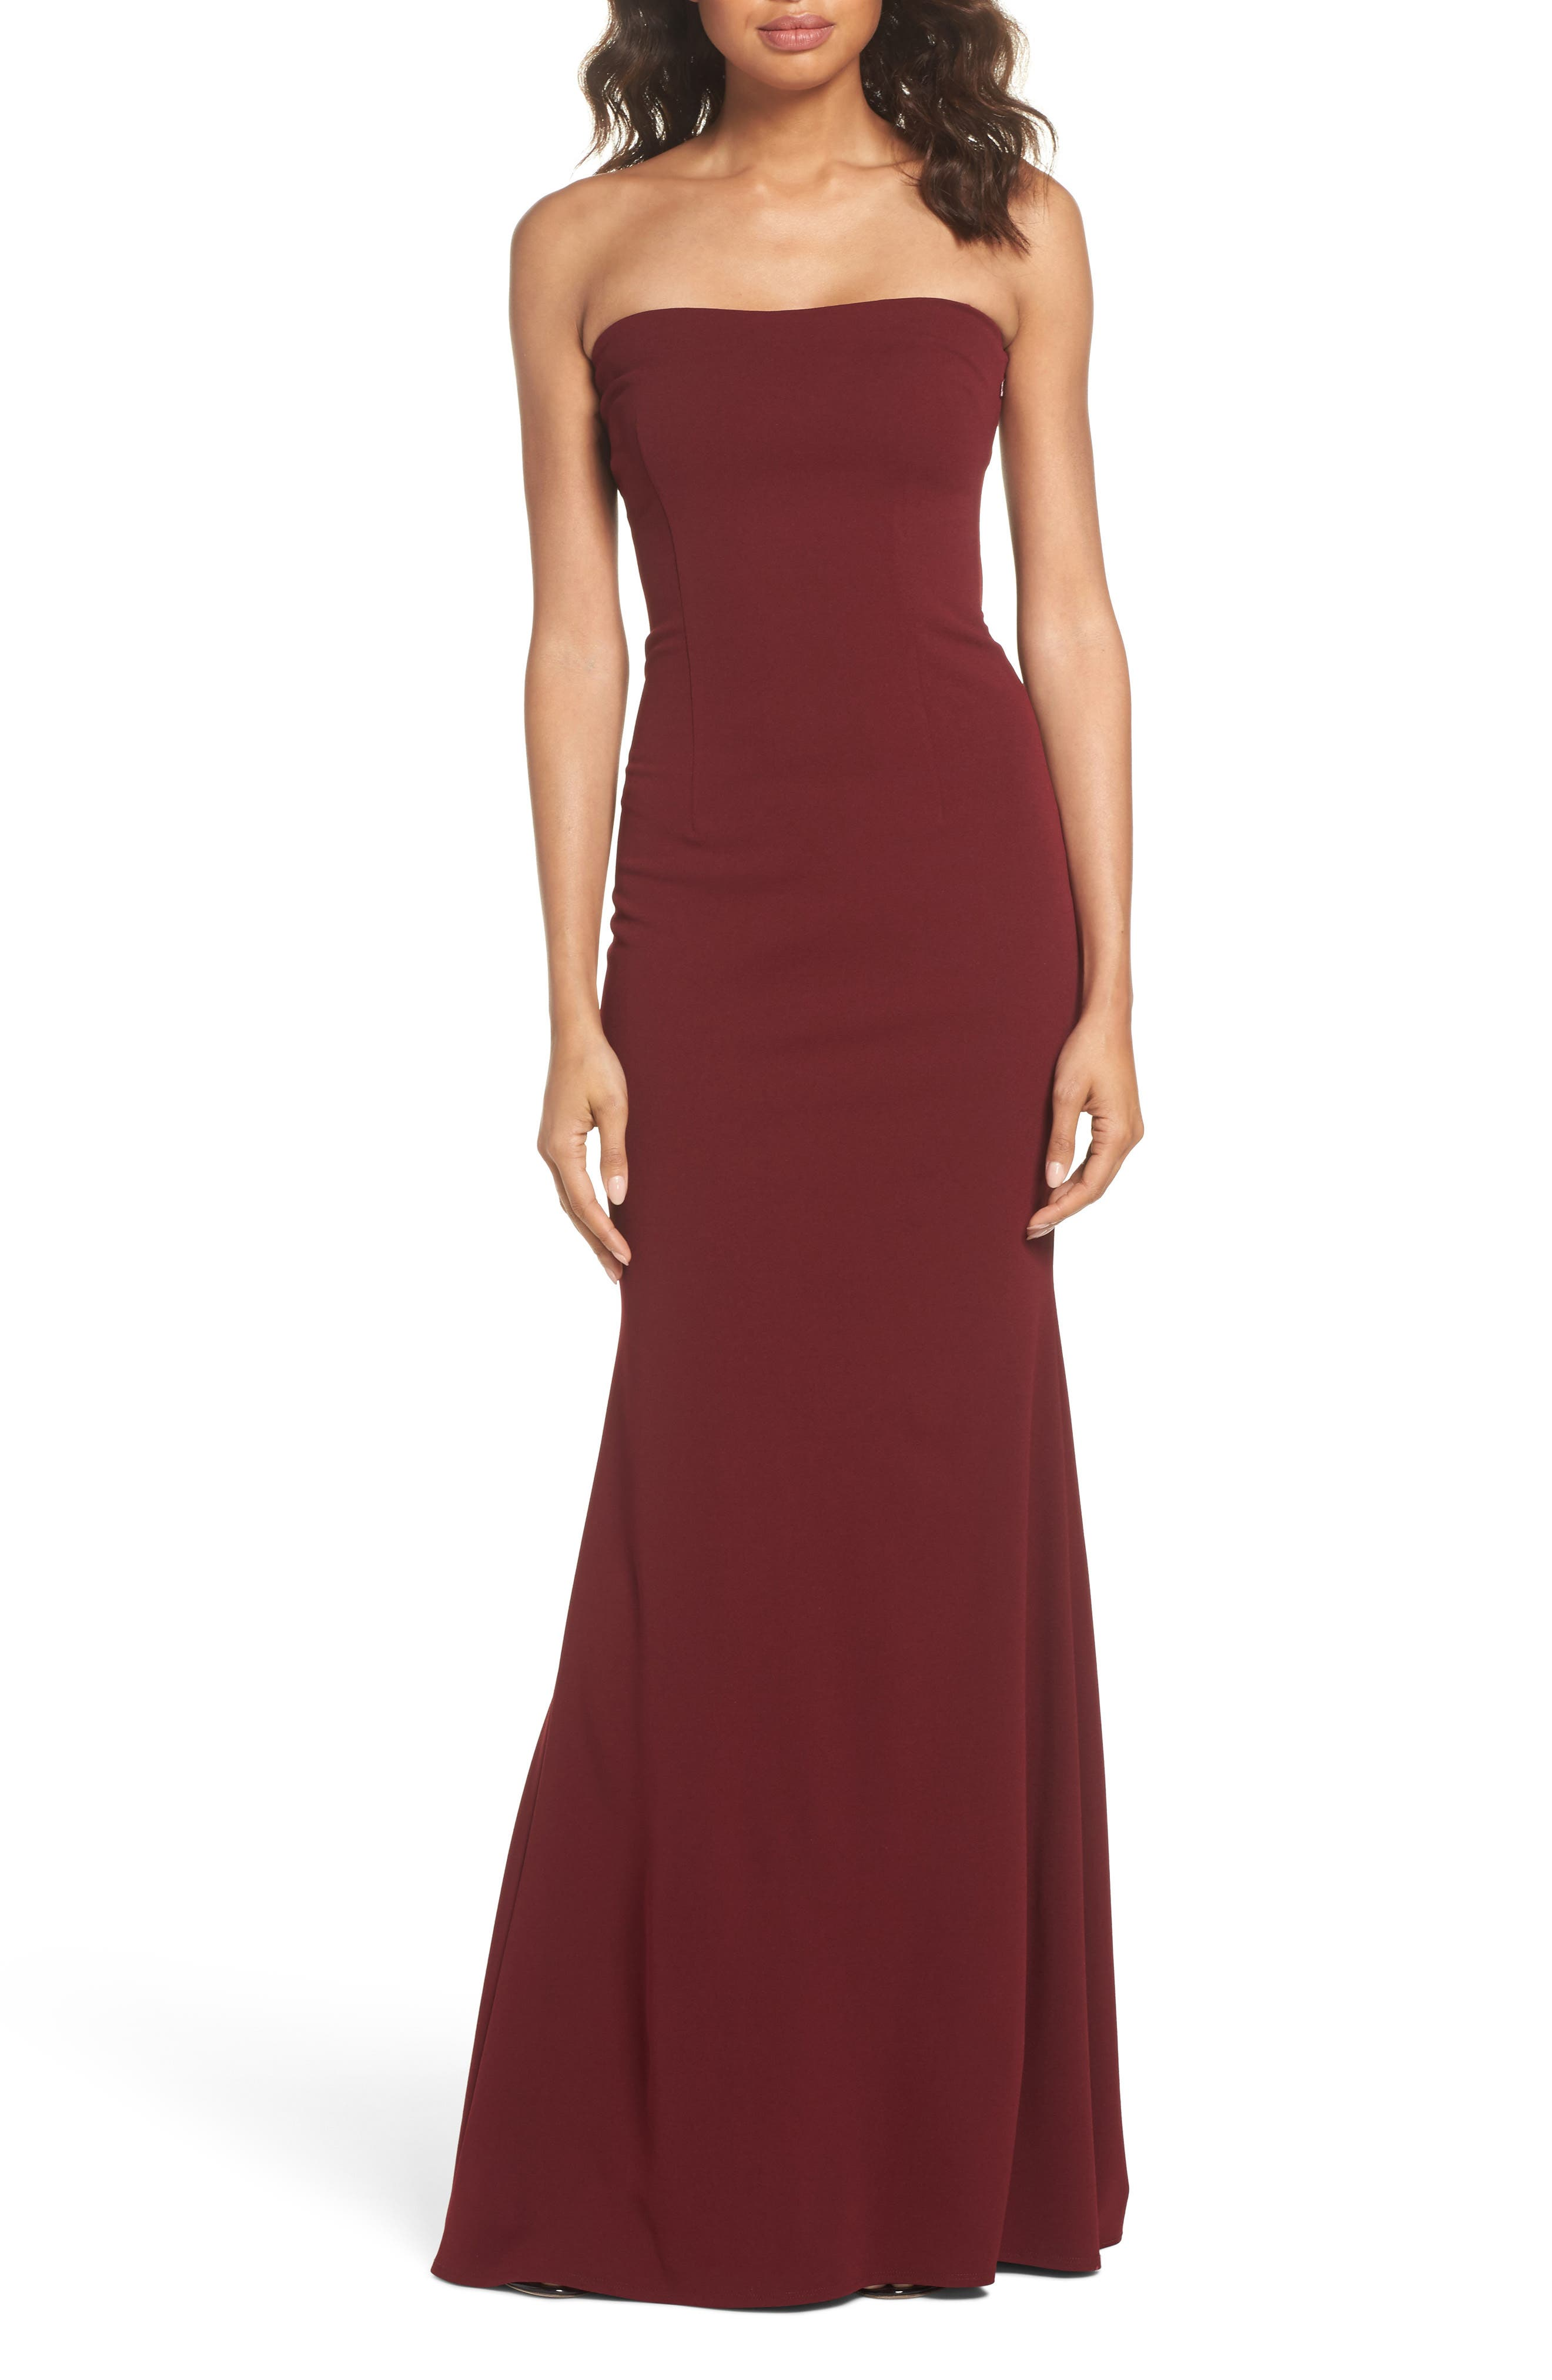 Alternate Image 1 Selected - Katie May Strapless Cutout Back Gown